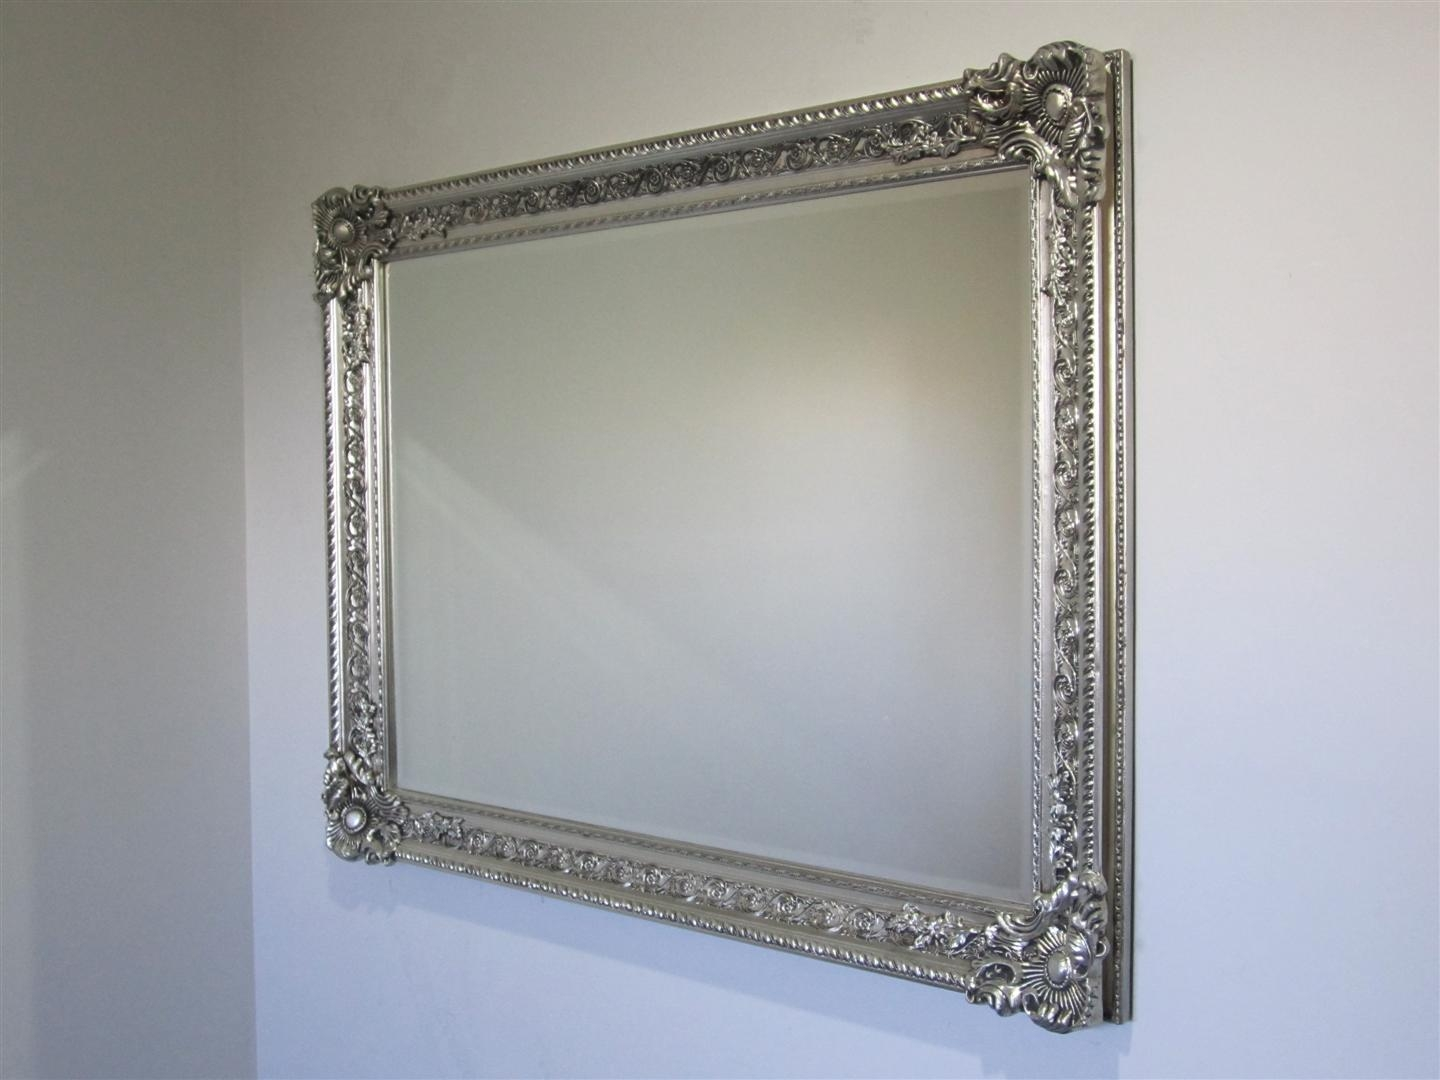 The Obelle Ornate Mirror 1200 X 950 Freestyle Mirrors Regarding Ornate Mirrors (Image 14 of 15)